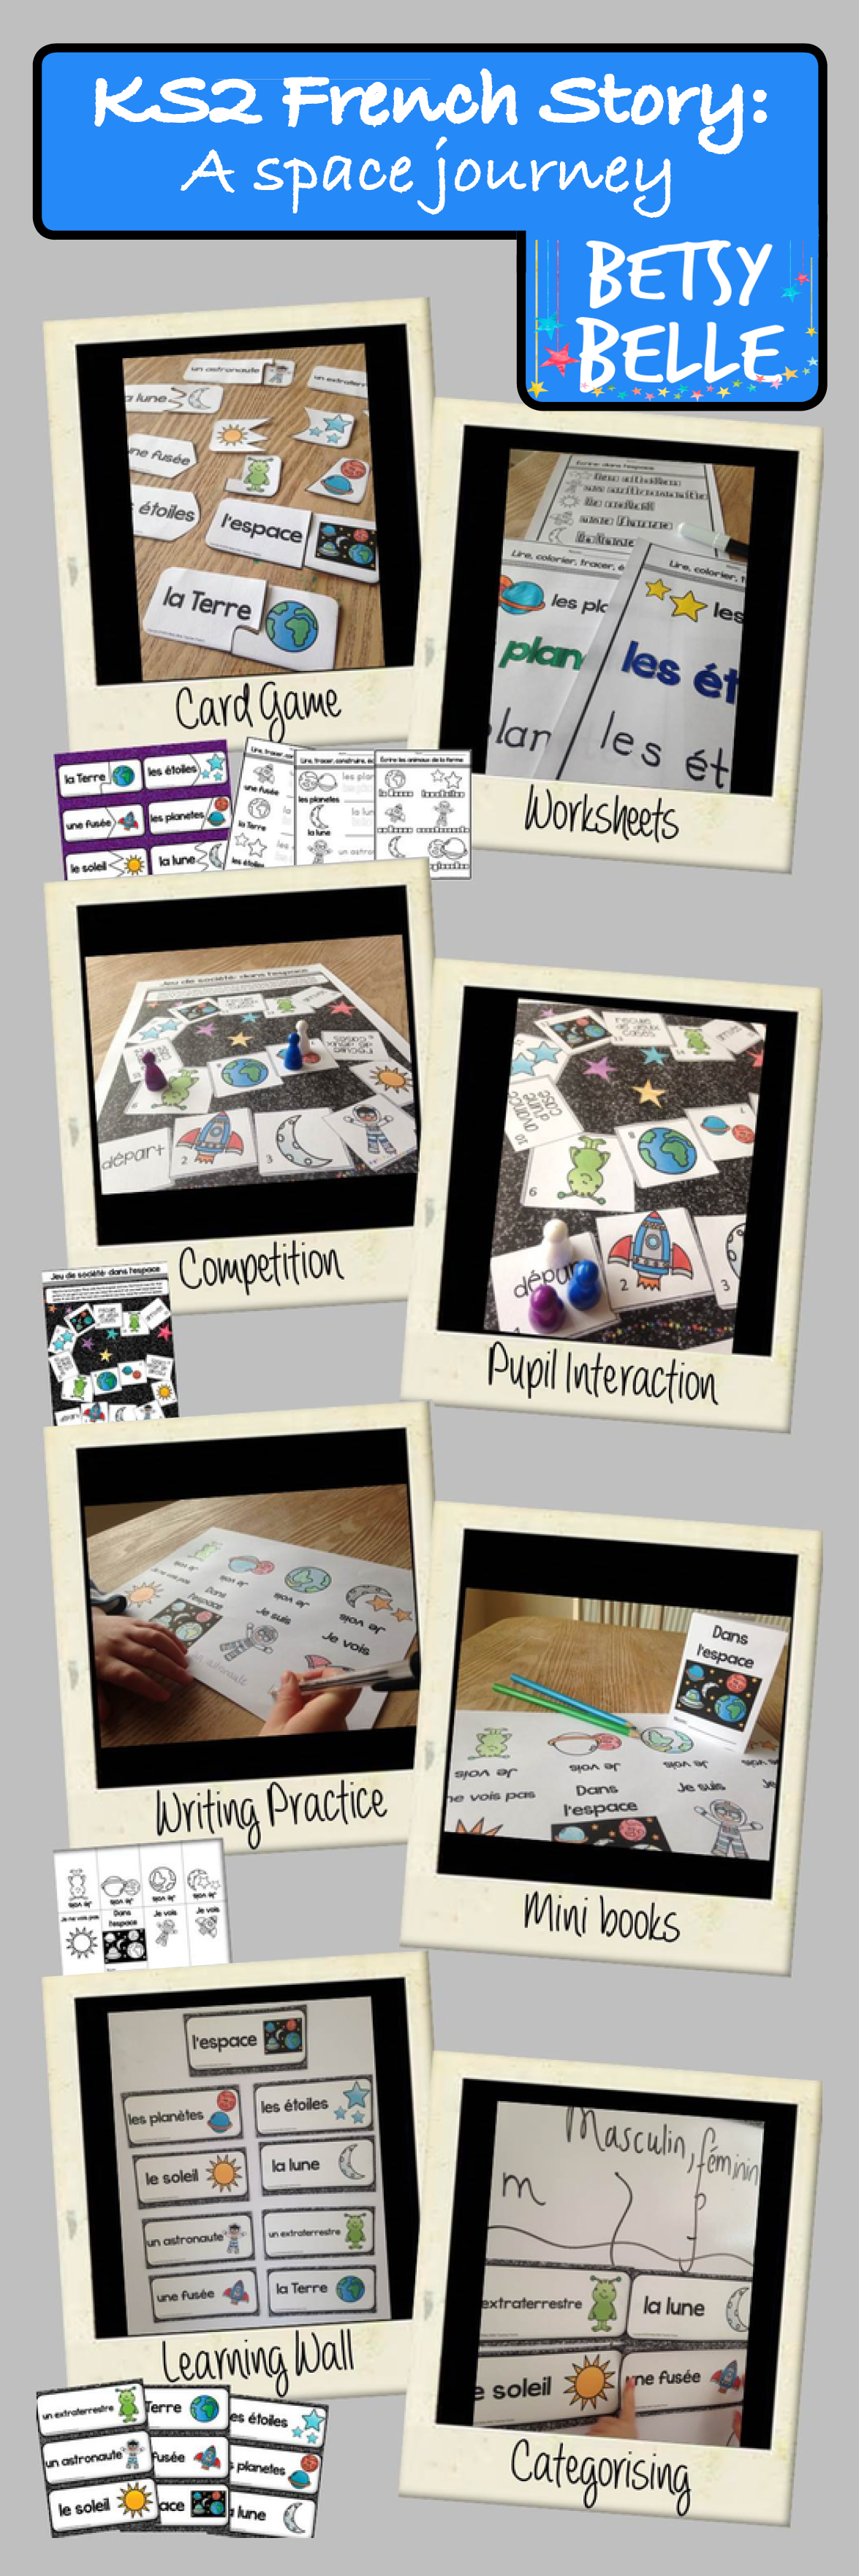 Ks2 French Story A Space Journey